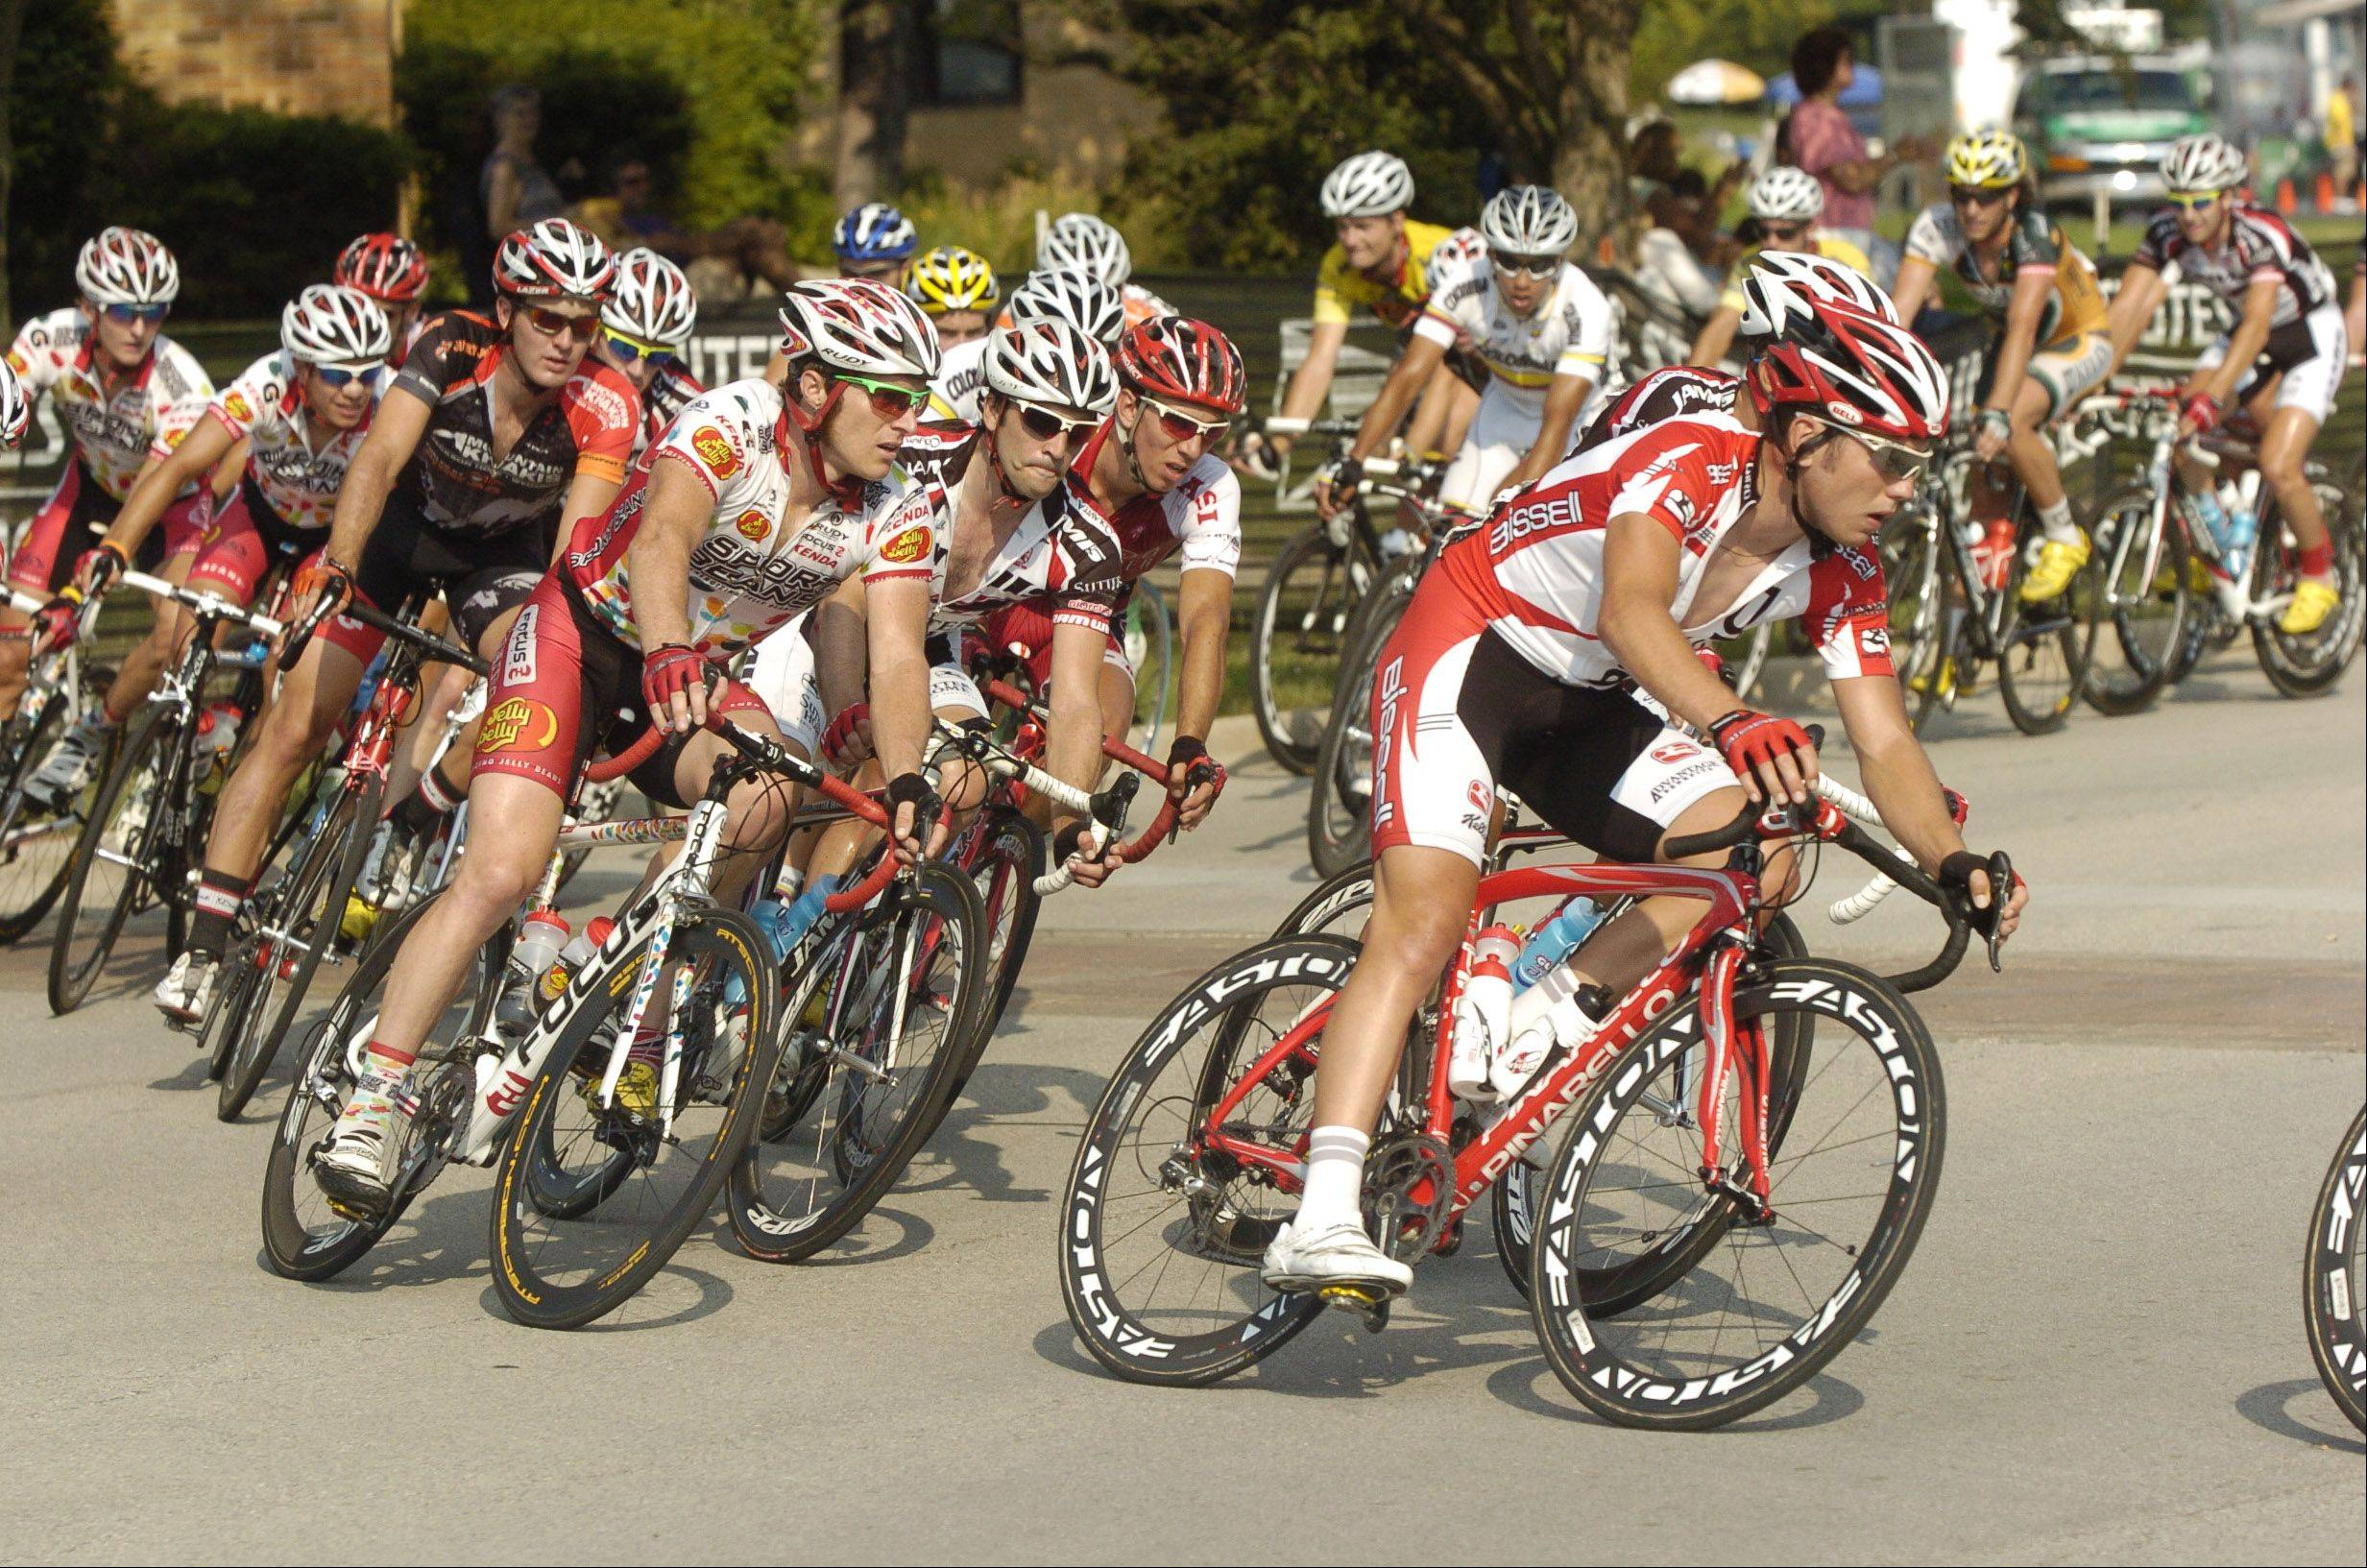 Riders make a turn during the Pro Men Criterium to finish out the 2010 Tour of Elk Grove.